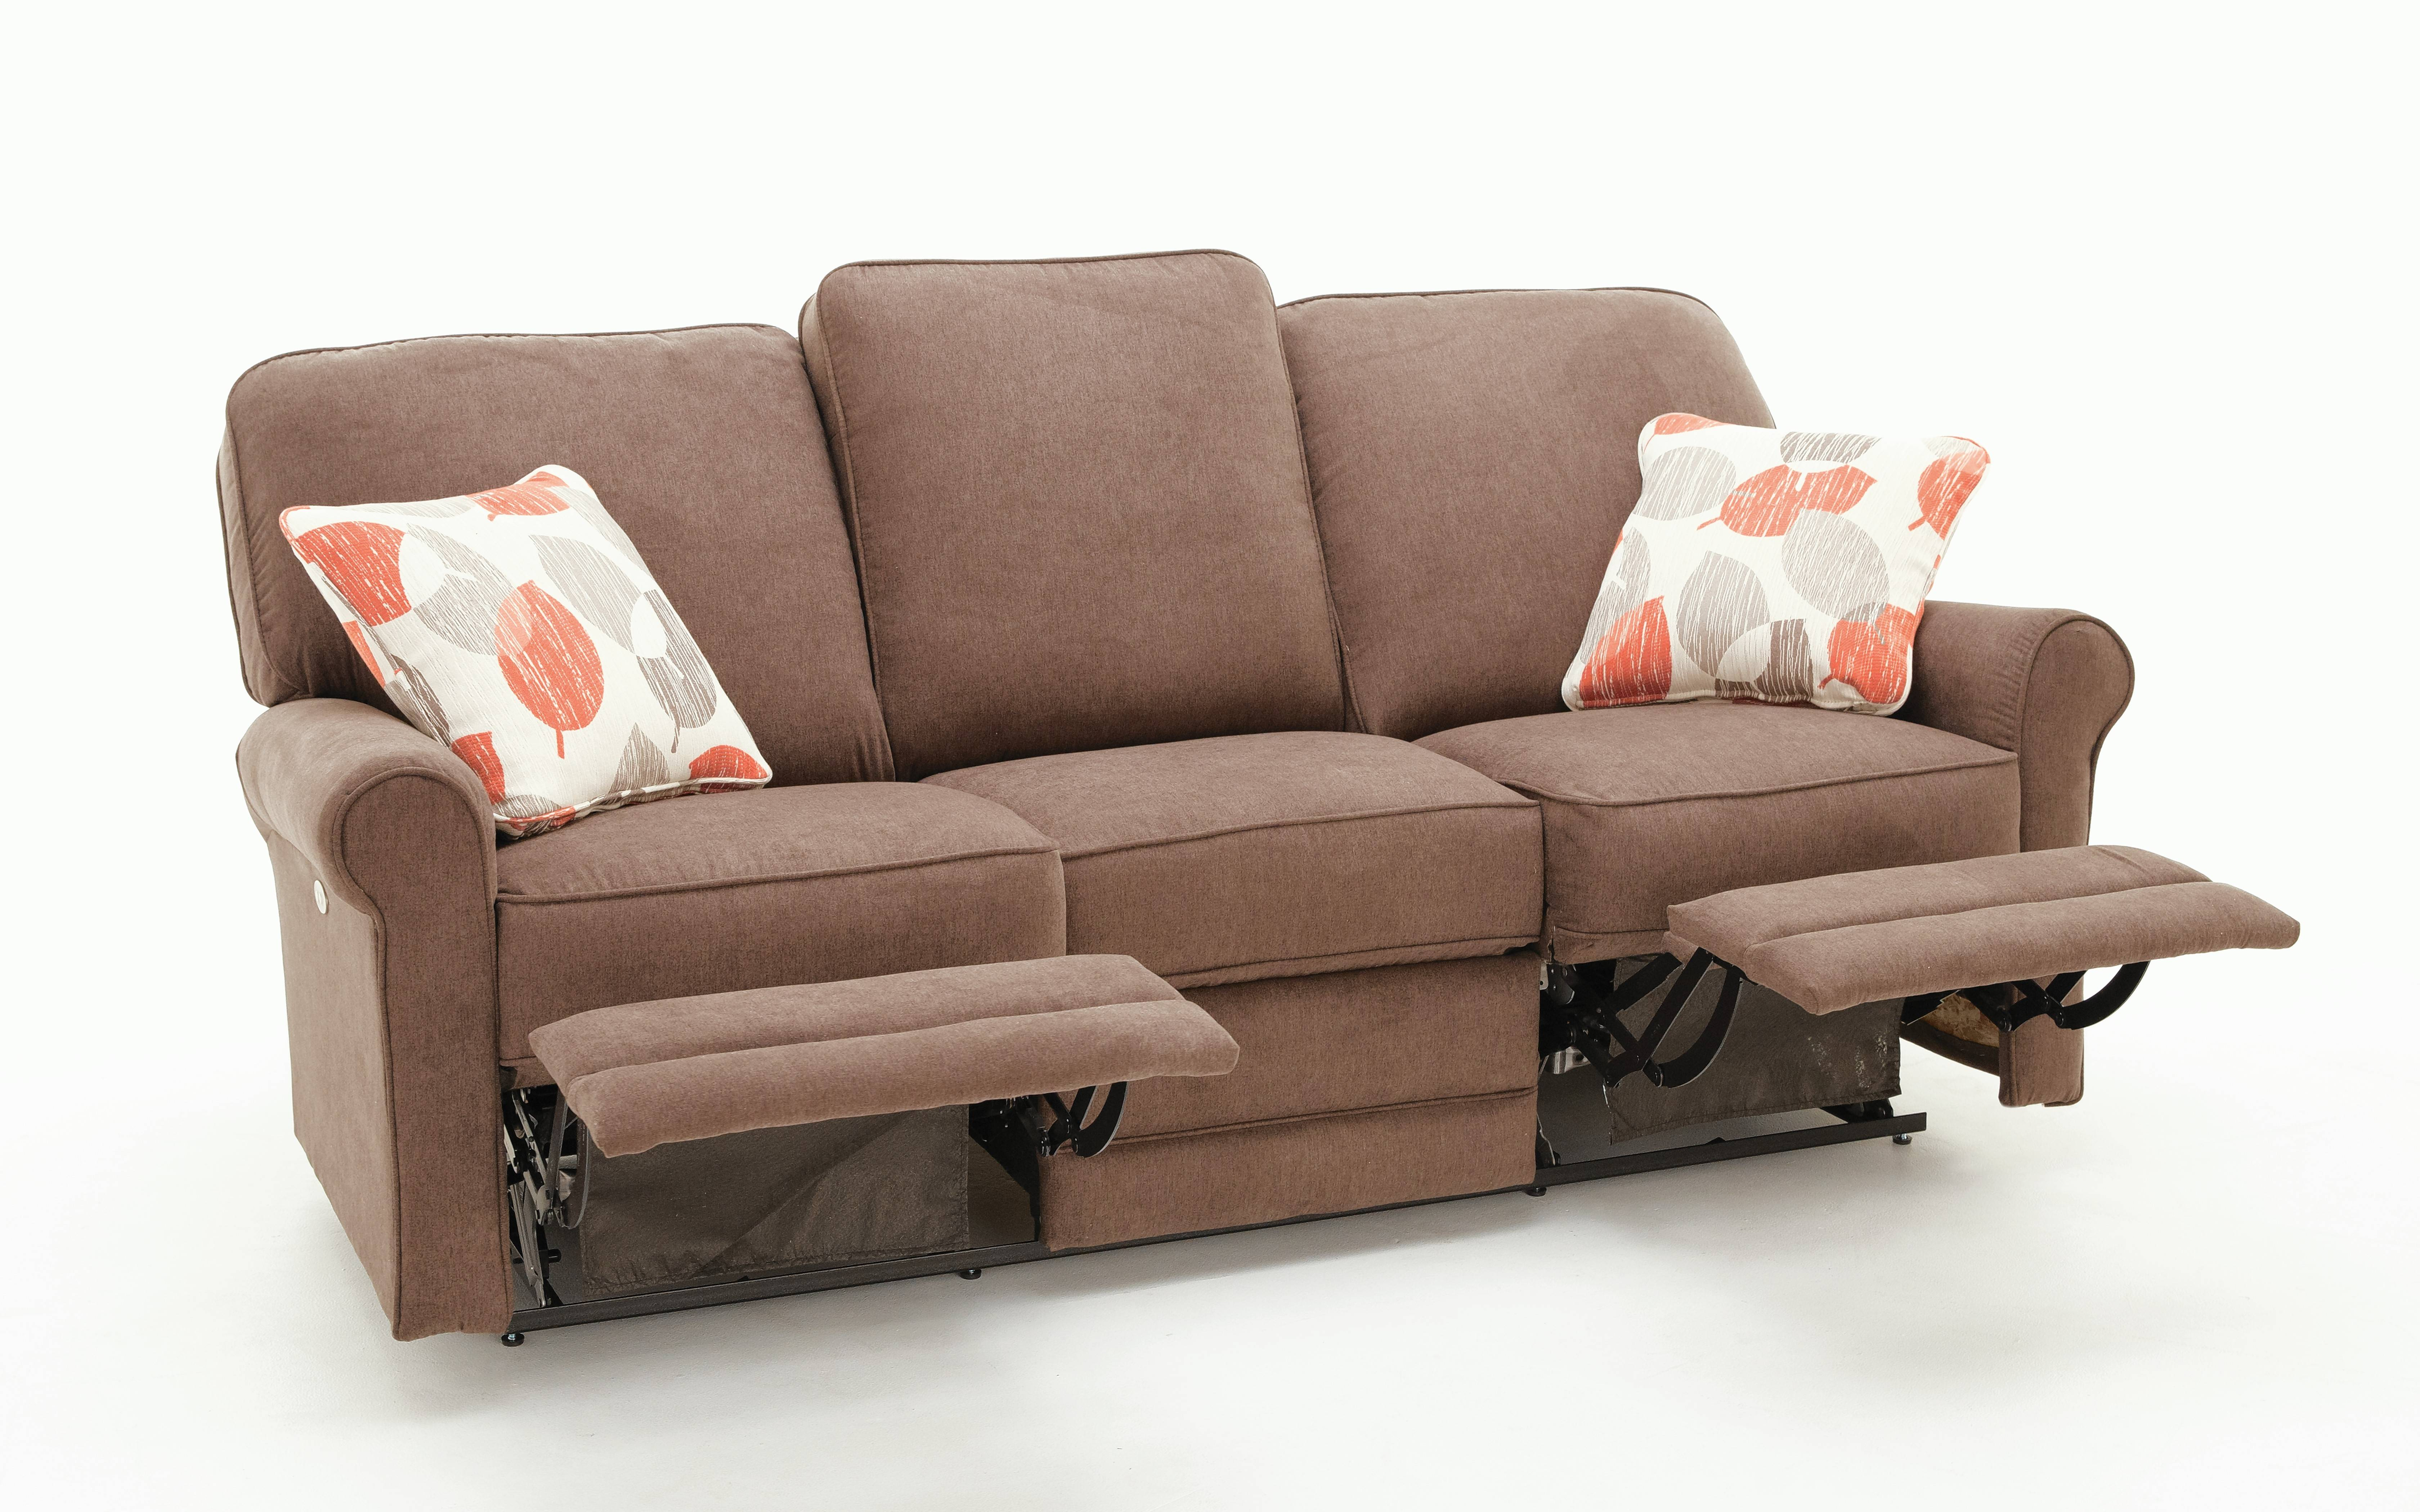 Reclining Furniture Remains Popular Today But Current Recliners Are More  Stylish Than In The Past.